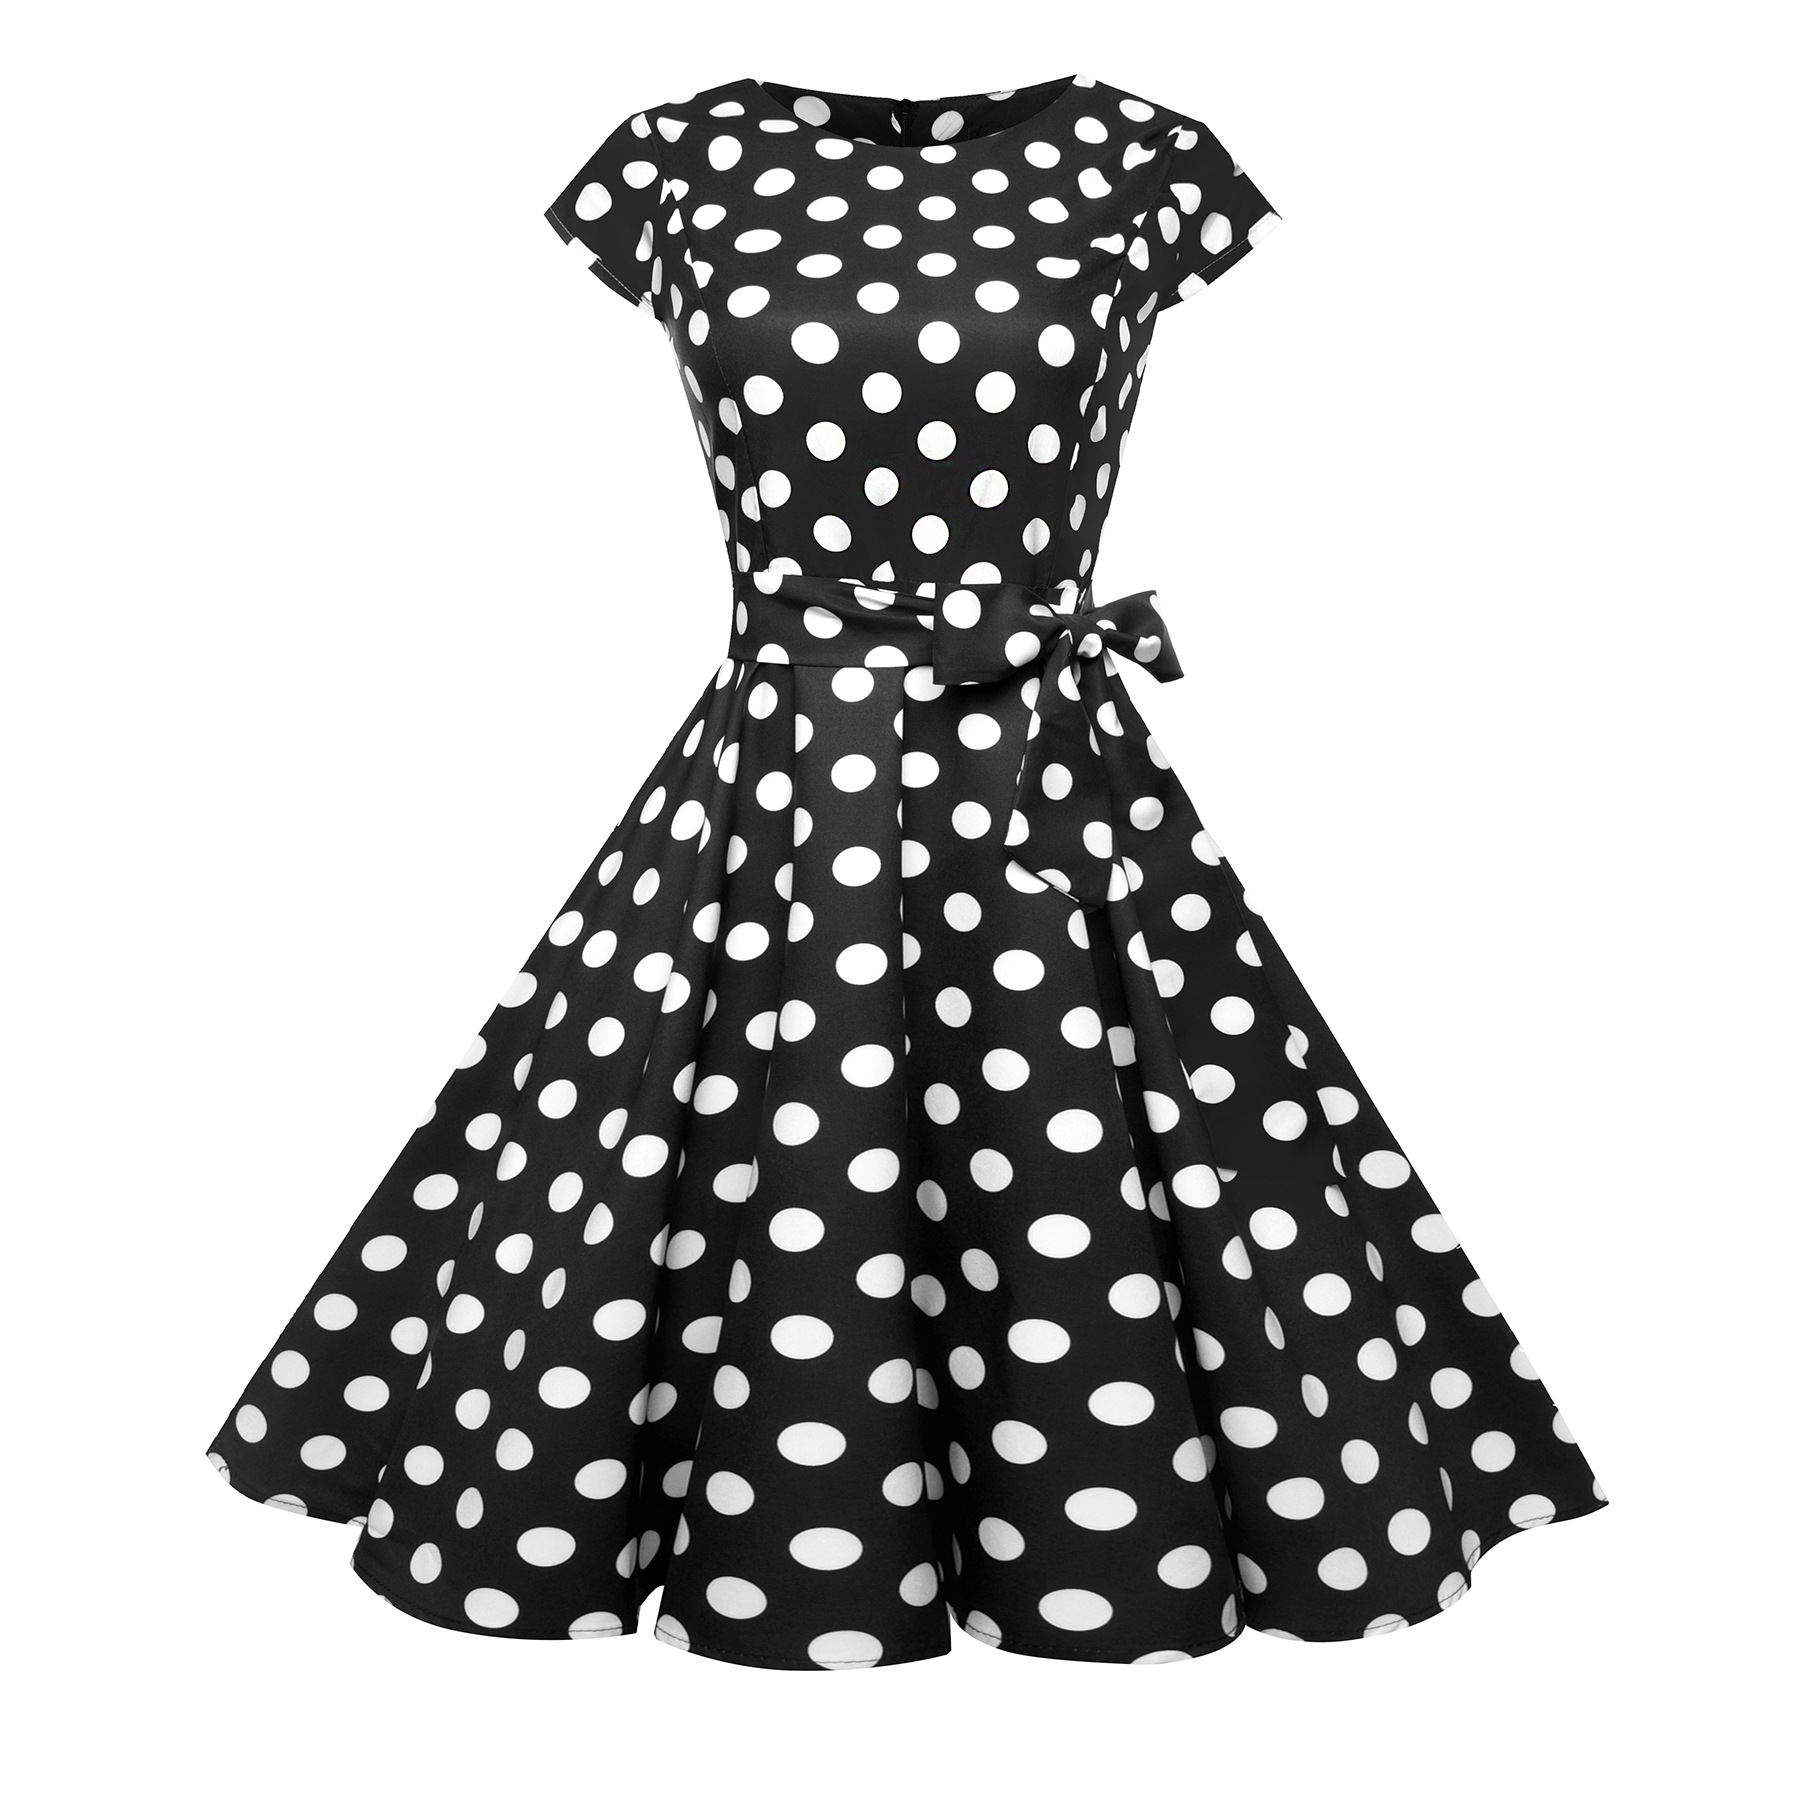 Short-sleeved polka dot dress O Neckts Cotton retro dresses Vintage Dress for party fatal